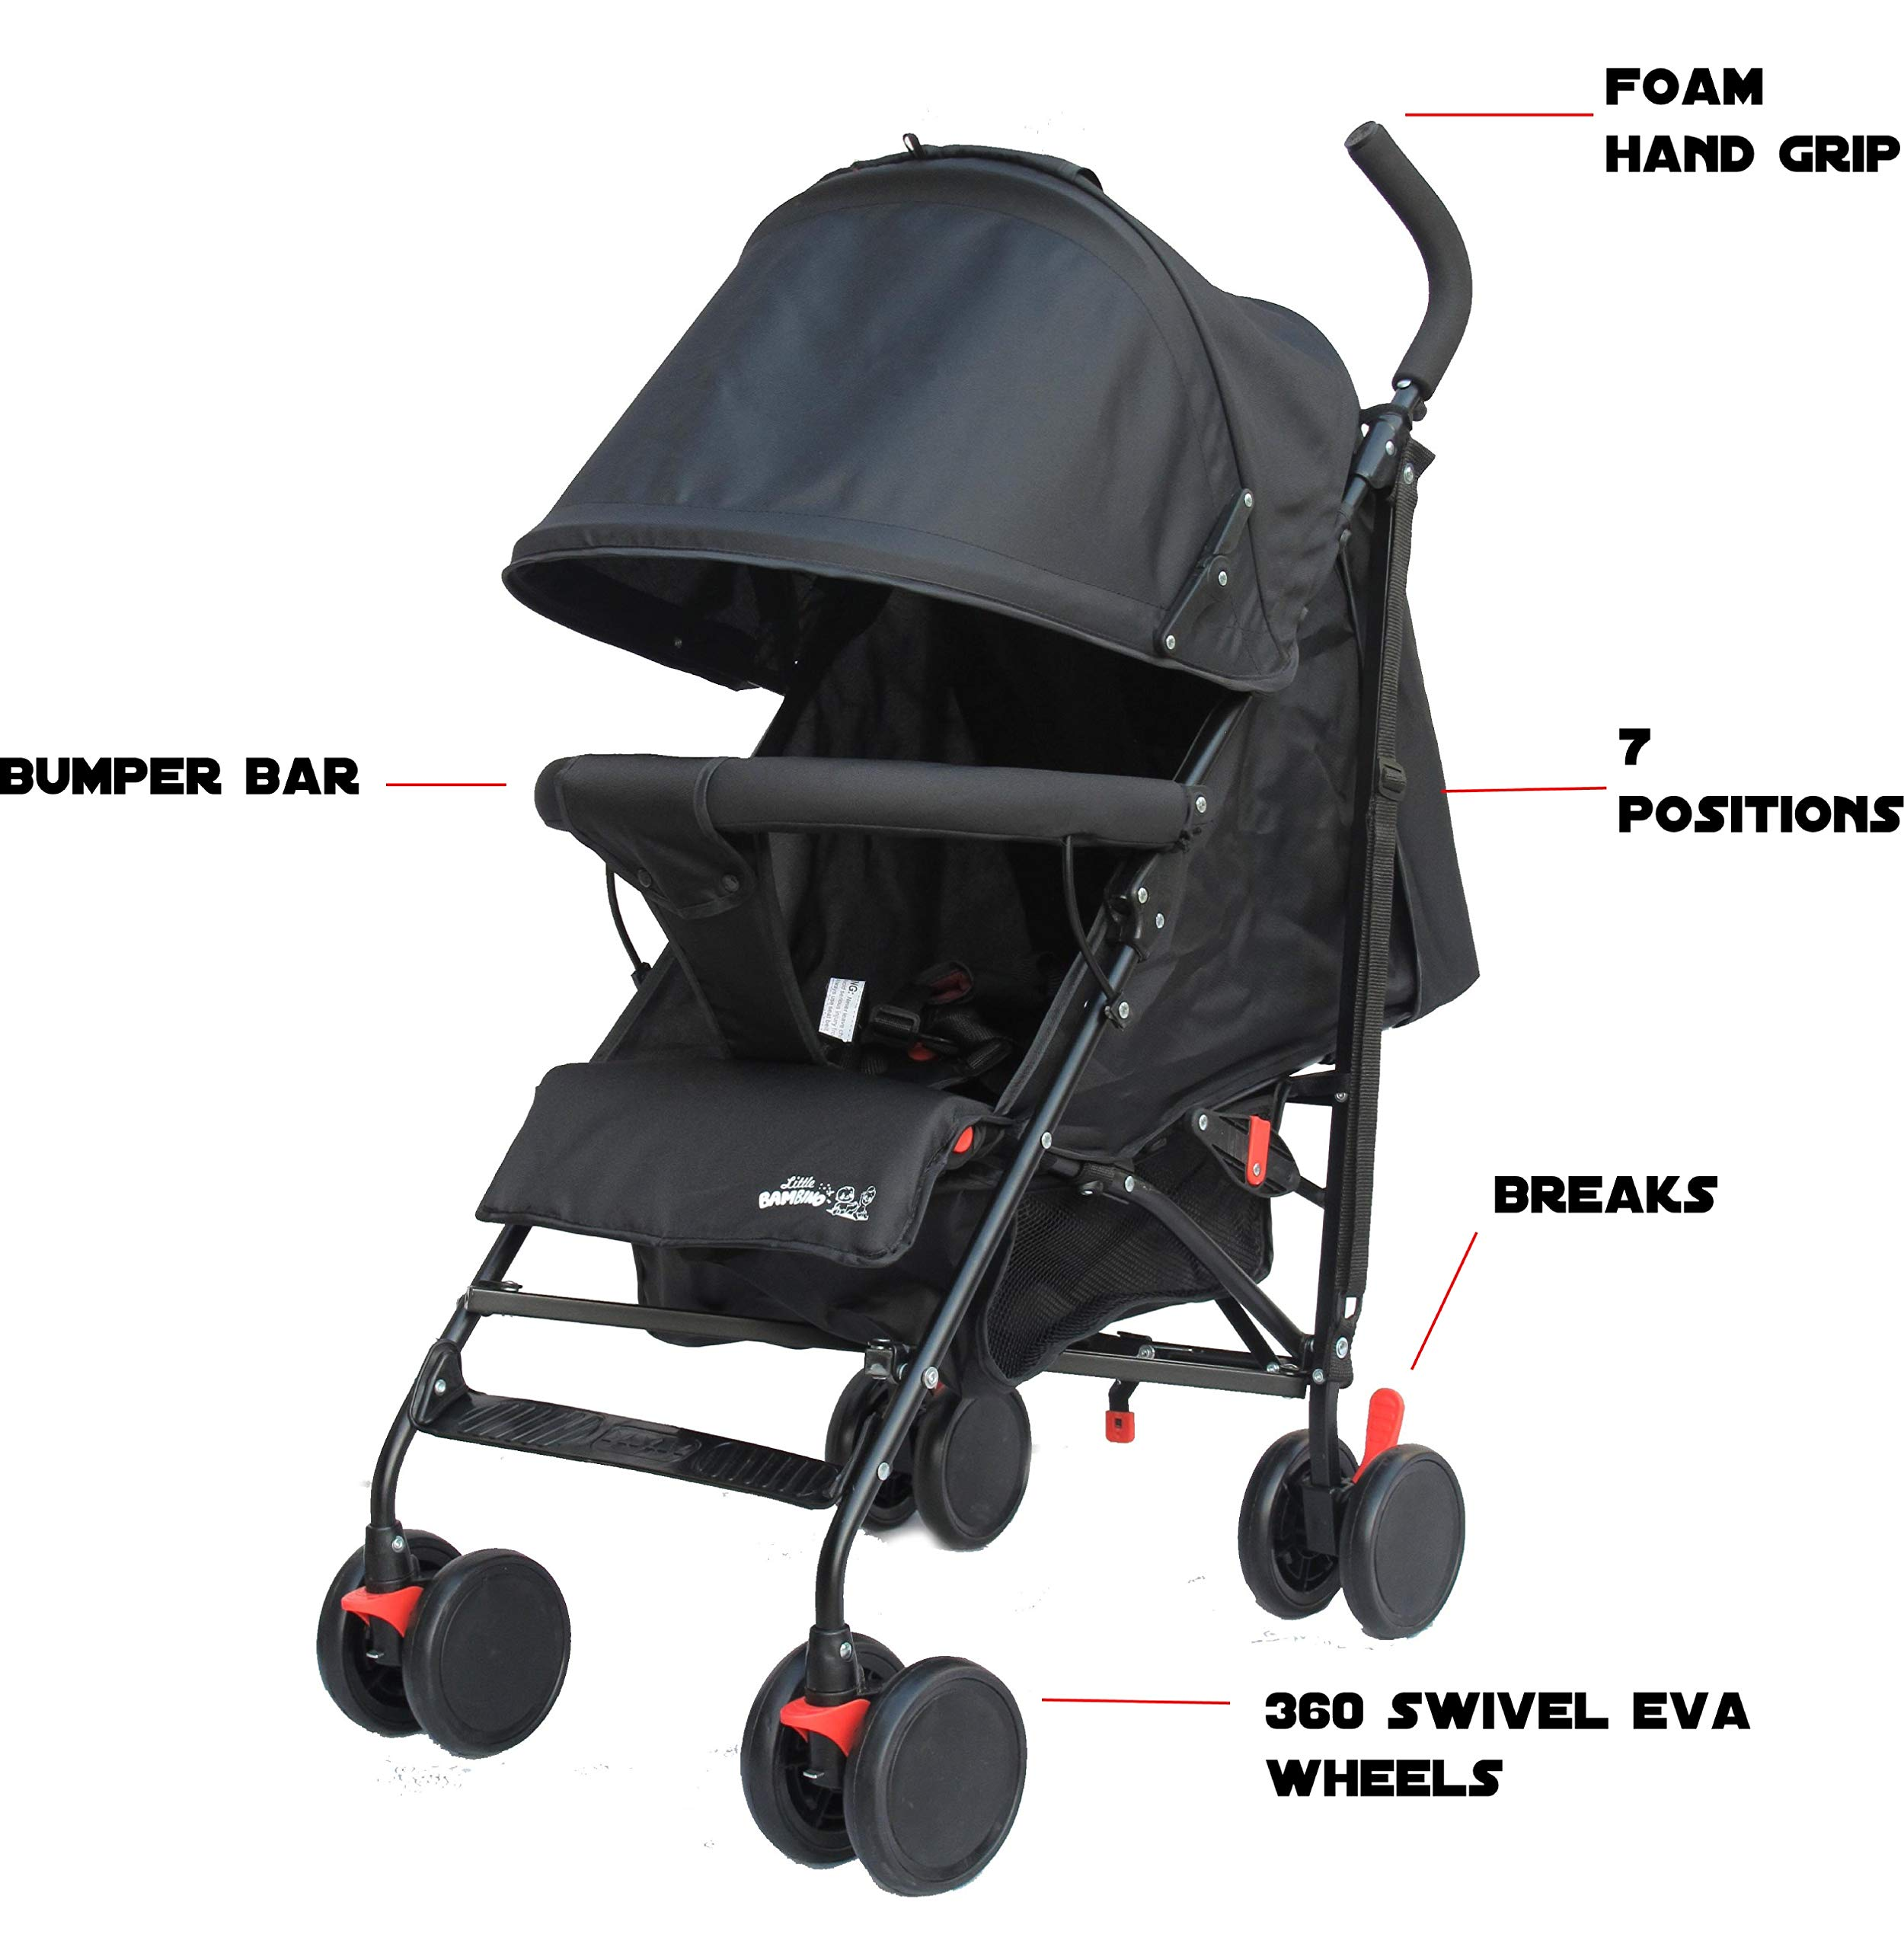 Stroller for Kids Lightweight Buggy Easy Fold Travel Stroller Buggy Foldable for Airplane Travel Cabin Size(Black) Little Bambino ✨Extendable upf 50+ sun canopy and built-in sun visor ✨EASY USAGE - One-hand foldable buggy makes taking your baby for travels or walks a simple pleasure. It could stand on its own so you could take care of your baby with less things to worry about. ✨ADJUSTABLE BACKREST - Travel stroller backrest can be adjusted. Suitable for children from 0 to 36 months 5